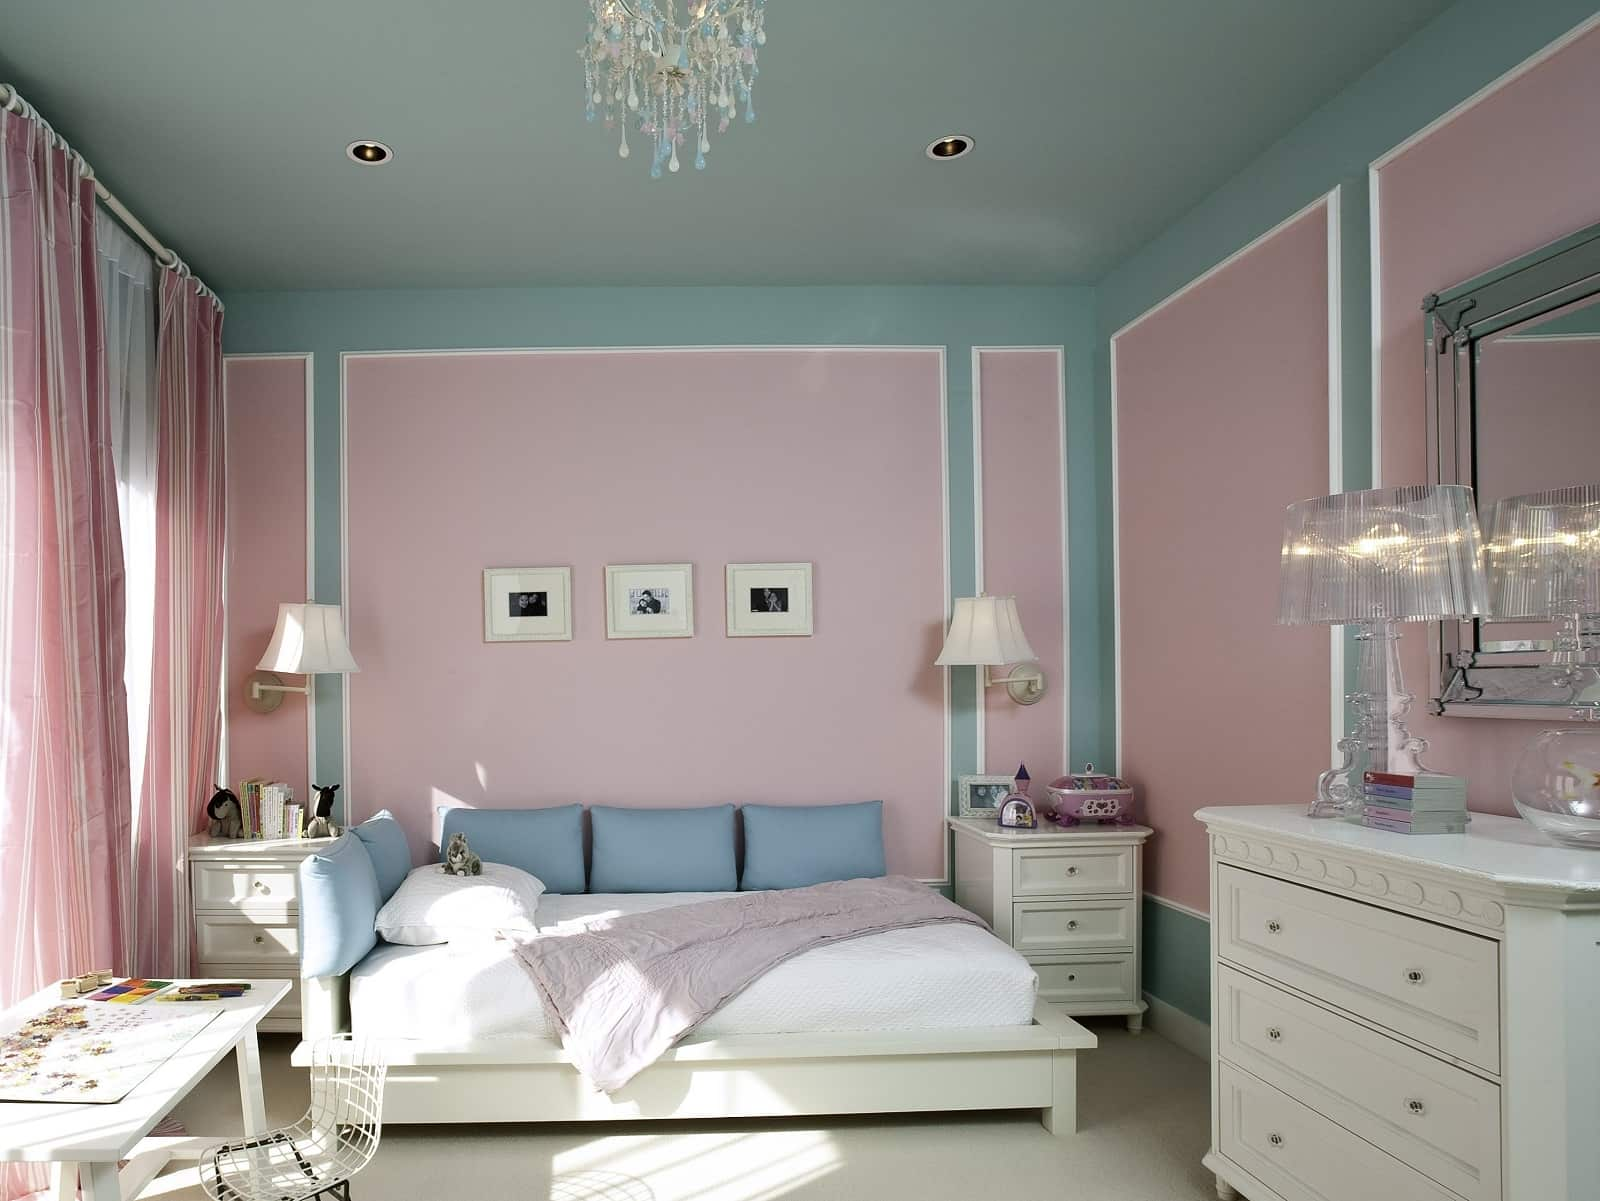 Home Remodeling & Renovation Ideas: 4 Ways to Update Your Home. Pink and blue color palette for large feminine bedroom with painted walls